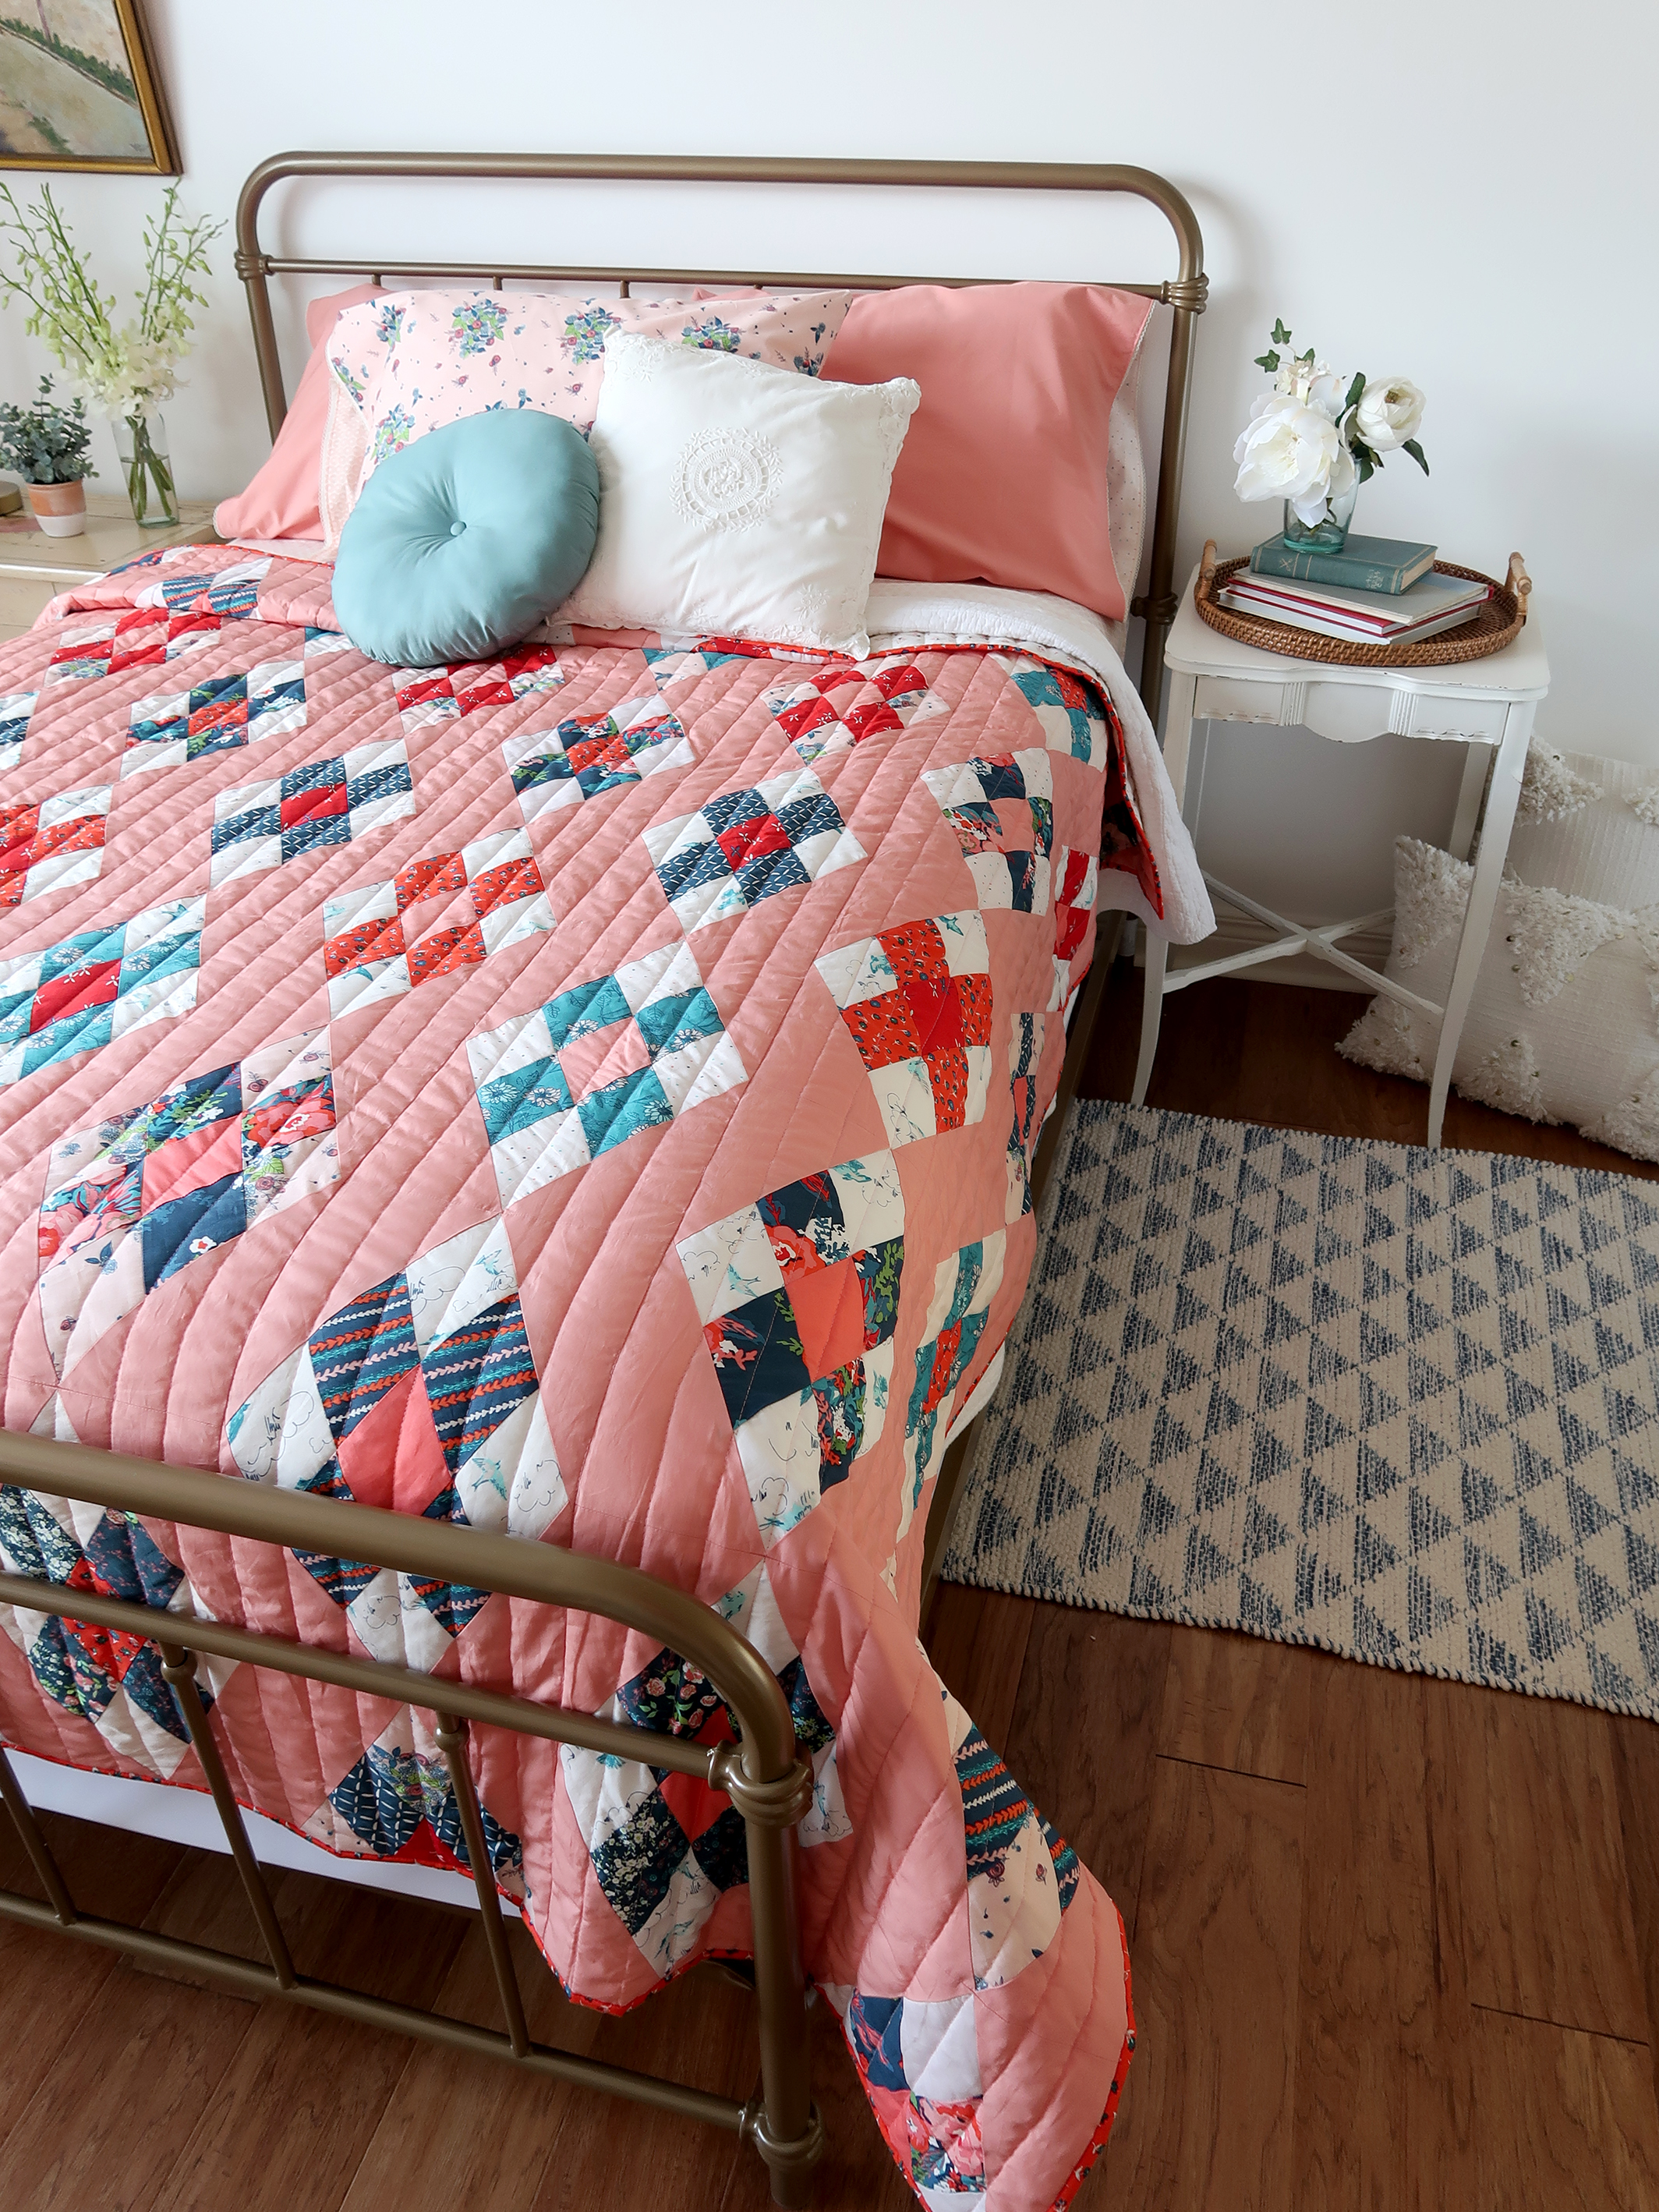 Diamond-Cut Quilt designed, made, and photographed by Sharon Holland